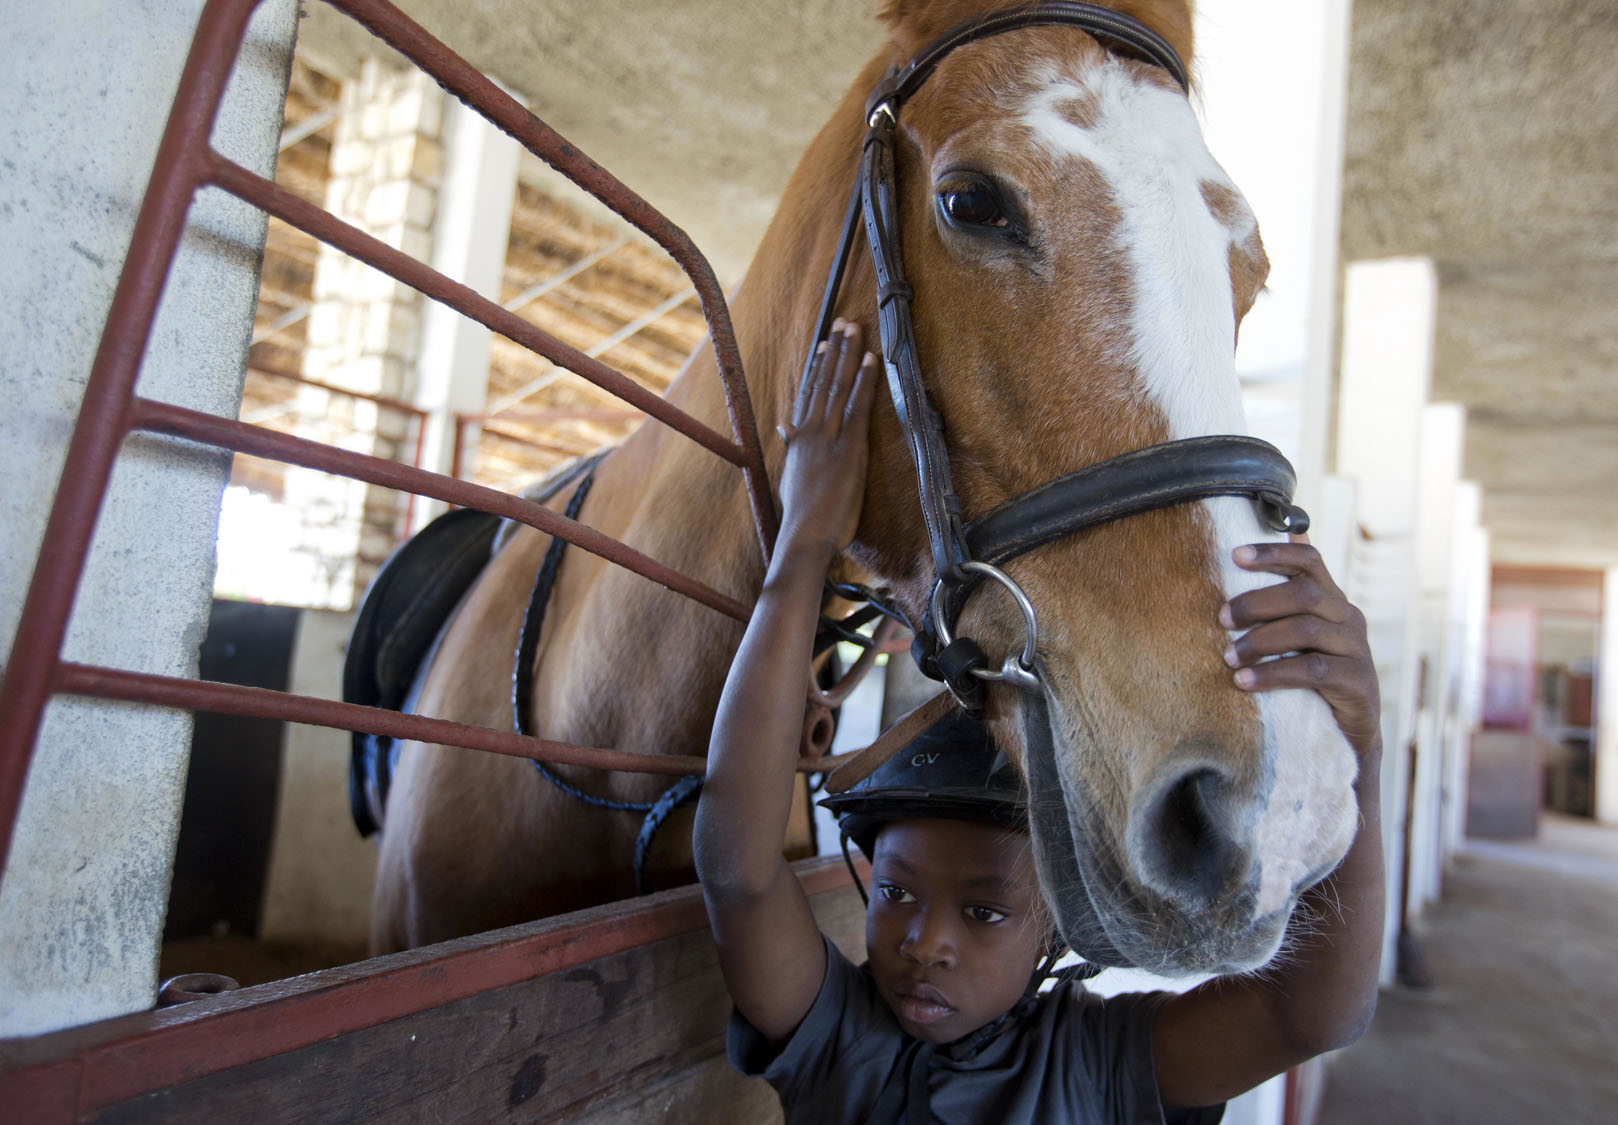 Horse riding improves life for disabled Haiti boy